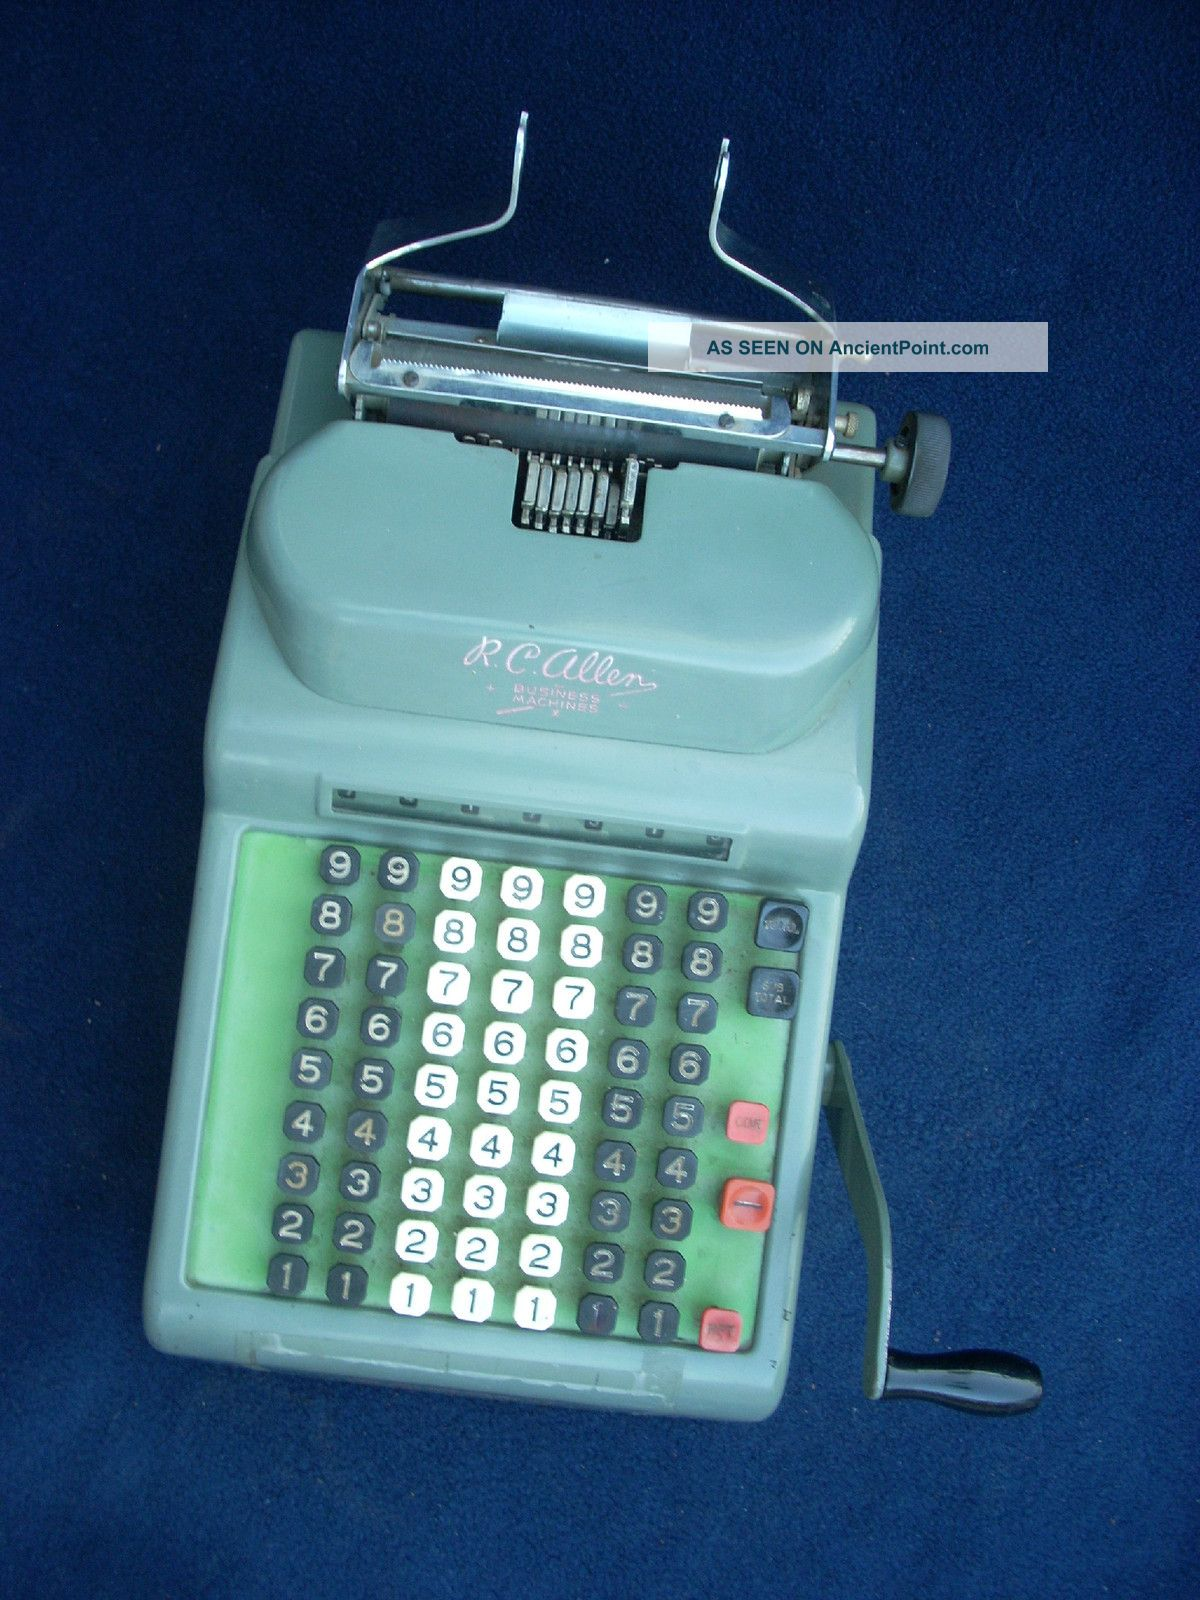 check writing machine 5, is a side view of the check writing machine of fig 1 showing the front of the machine on the left and.